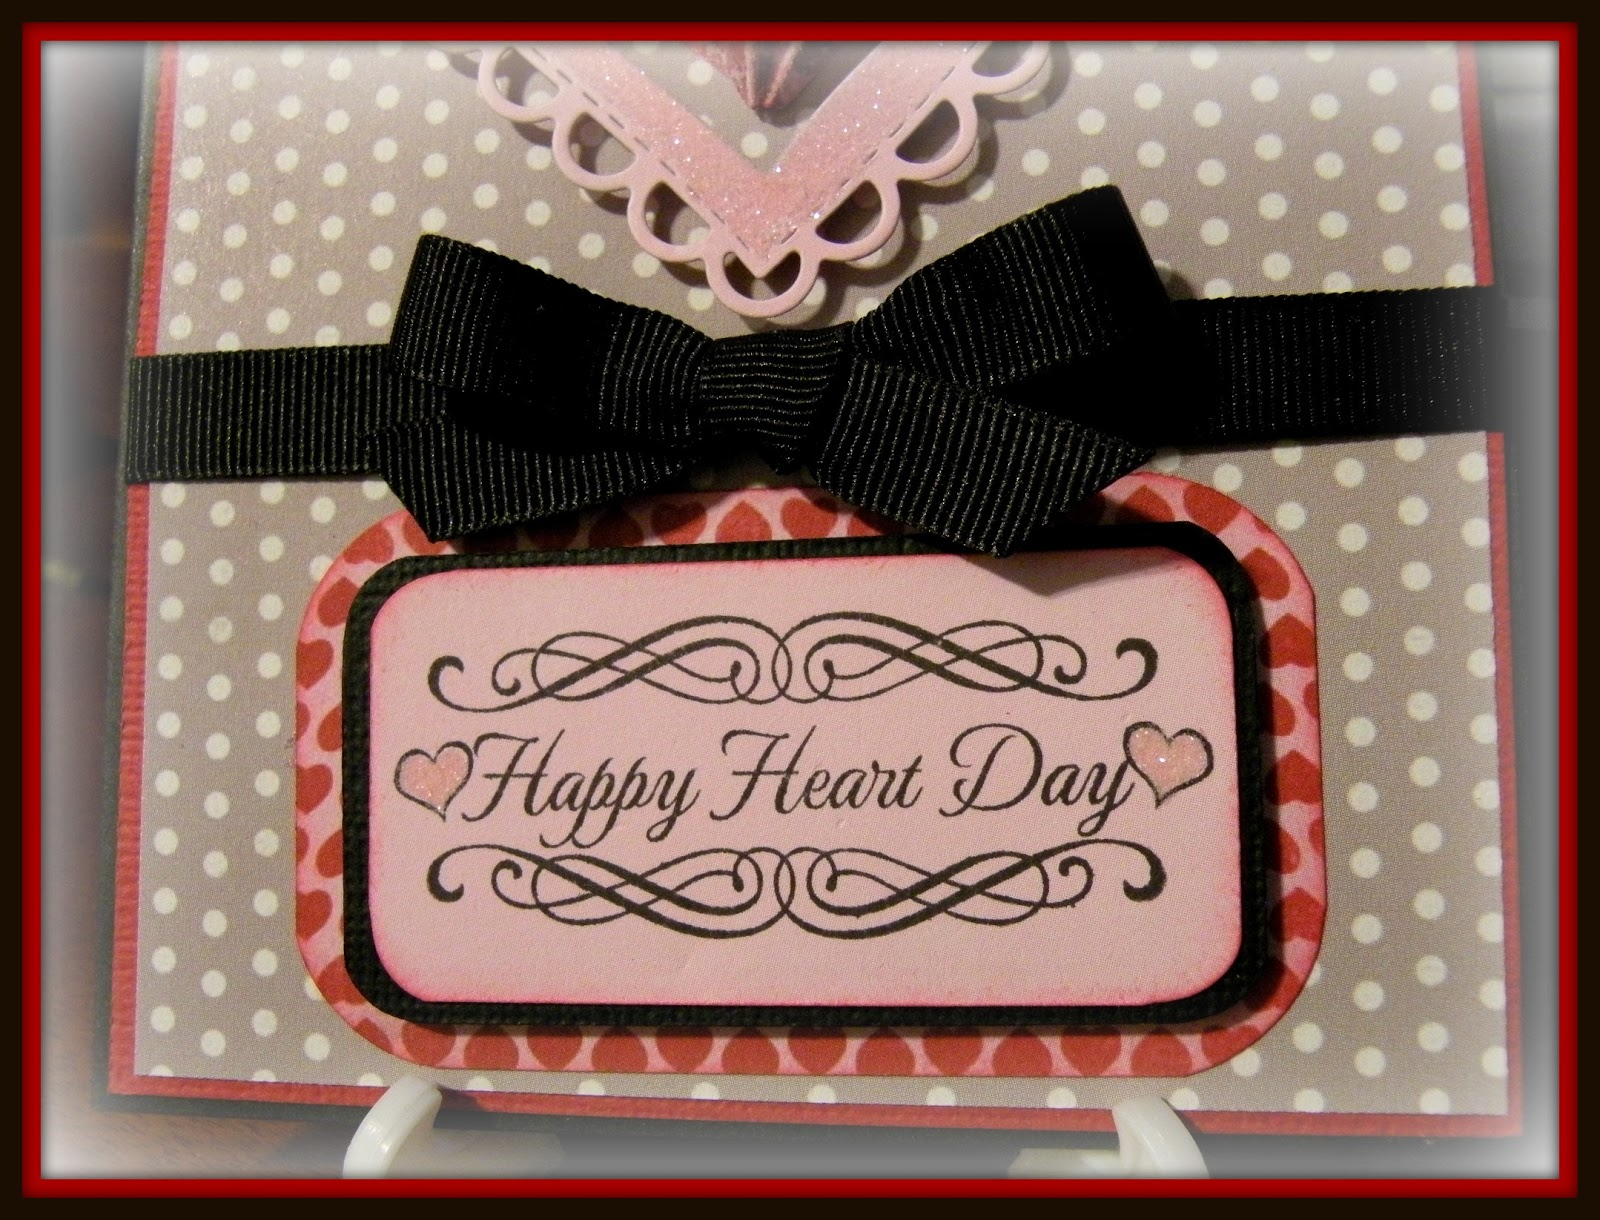 Dragonfly Designs: Stitched Scalloped Heart Die...